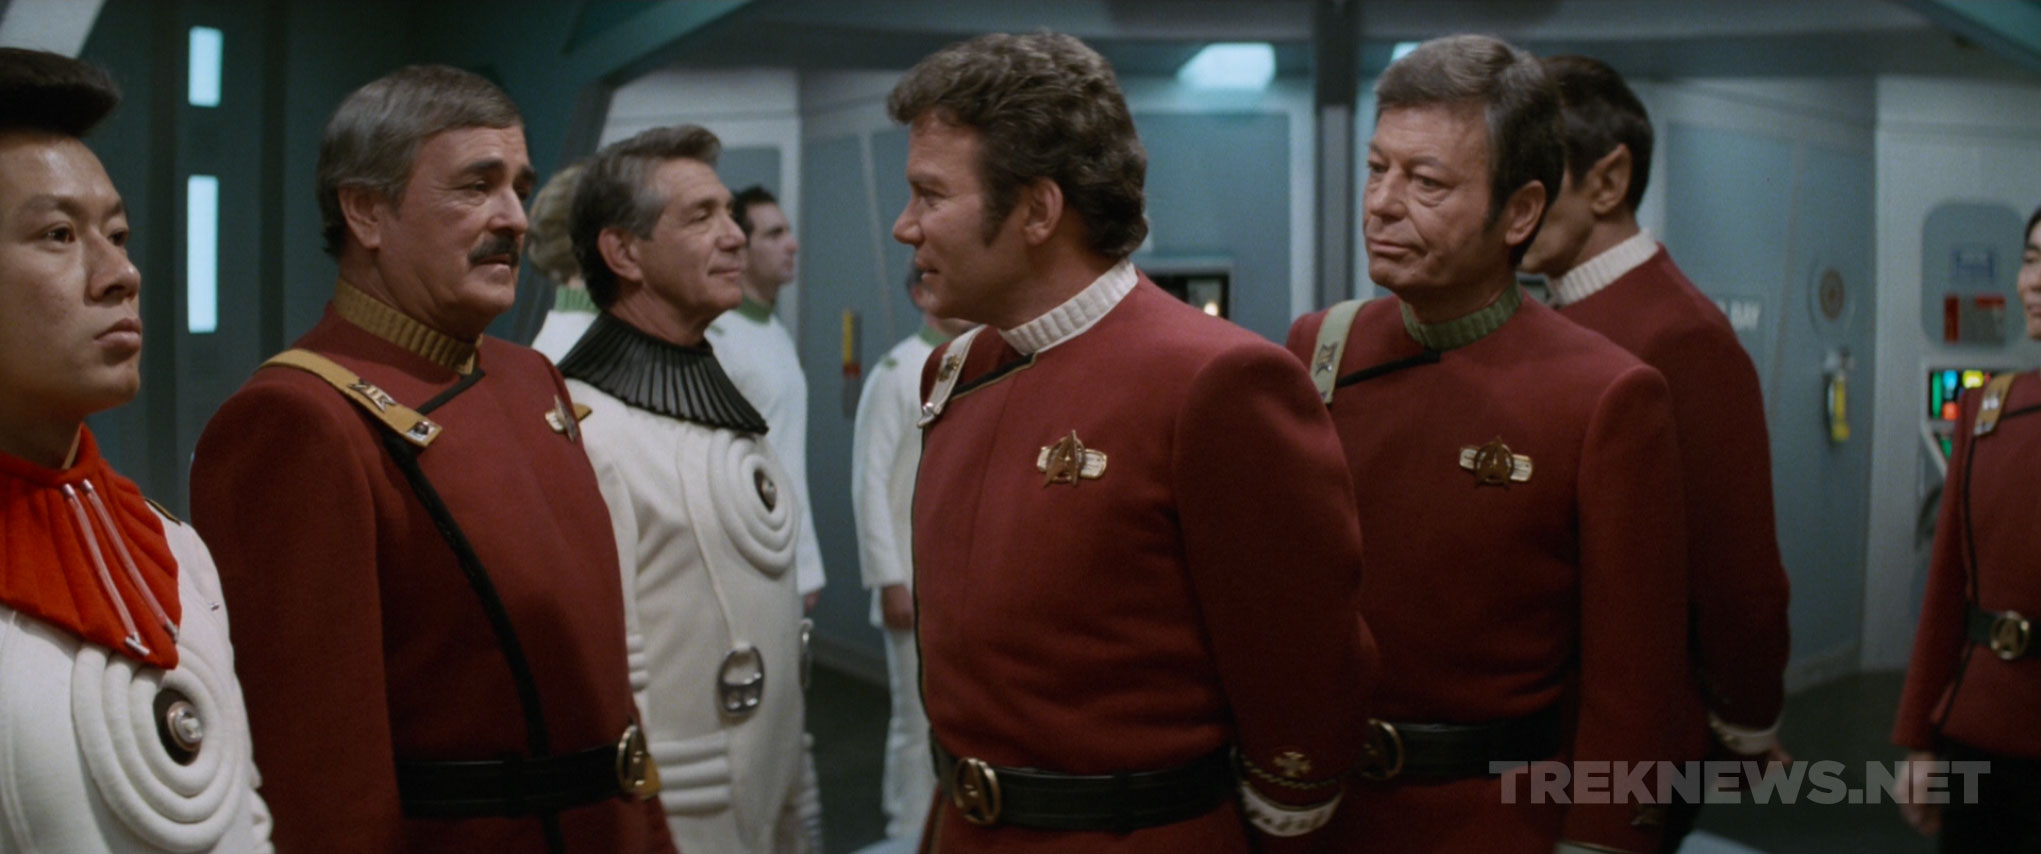 "a review of the star trek movie the wrath of khan The film also creates a direct bridge to the past by revisiting a classic star trek episode ricardo montalbán's noonien singh khan first appeared in february 16, 1967 in the twenty-seconnd episode of the first season of star trek in an episode called ""space seed."